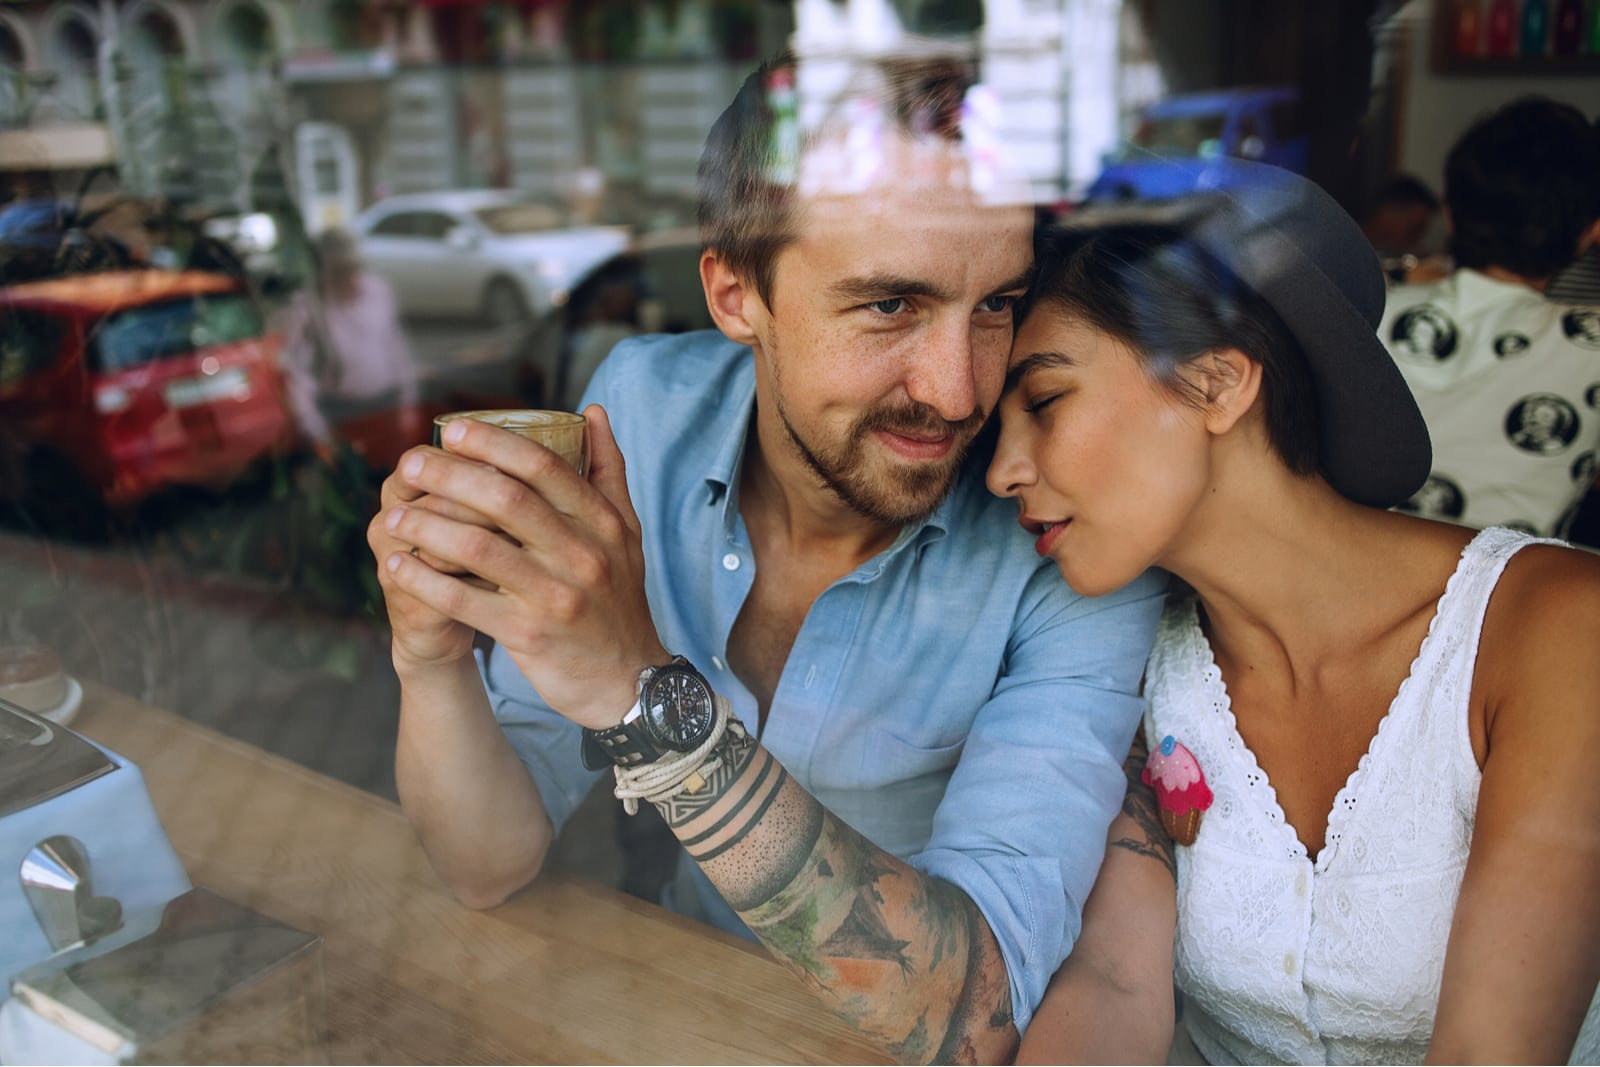 a loving couple hugging in a cafe by the window